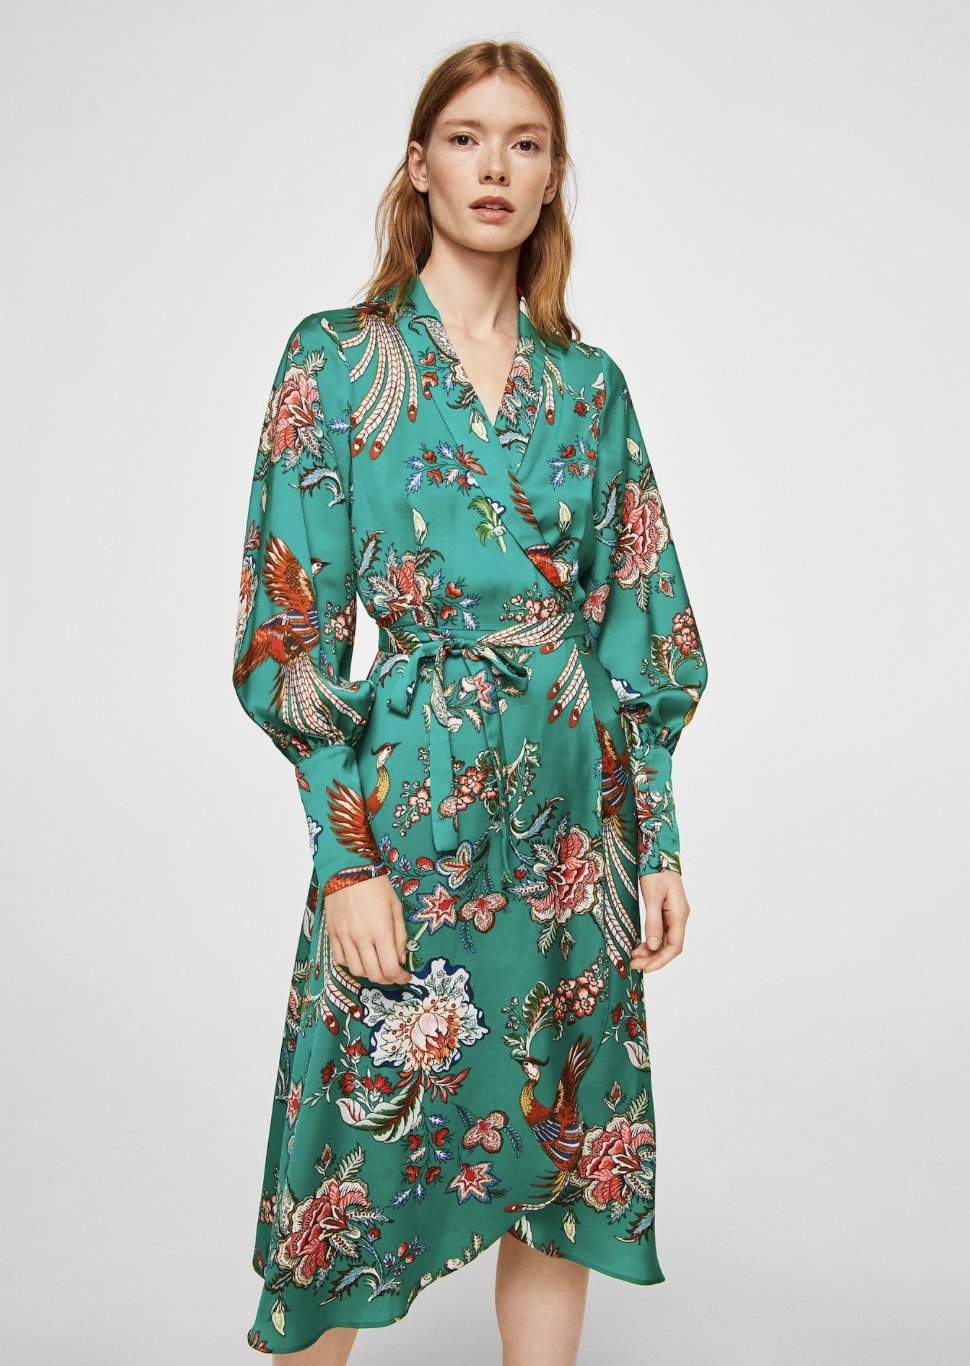 bow floral dress –$79.99